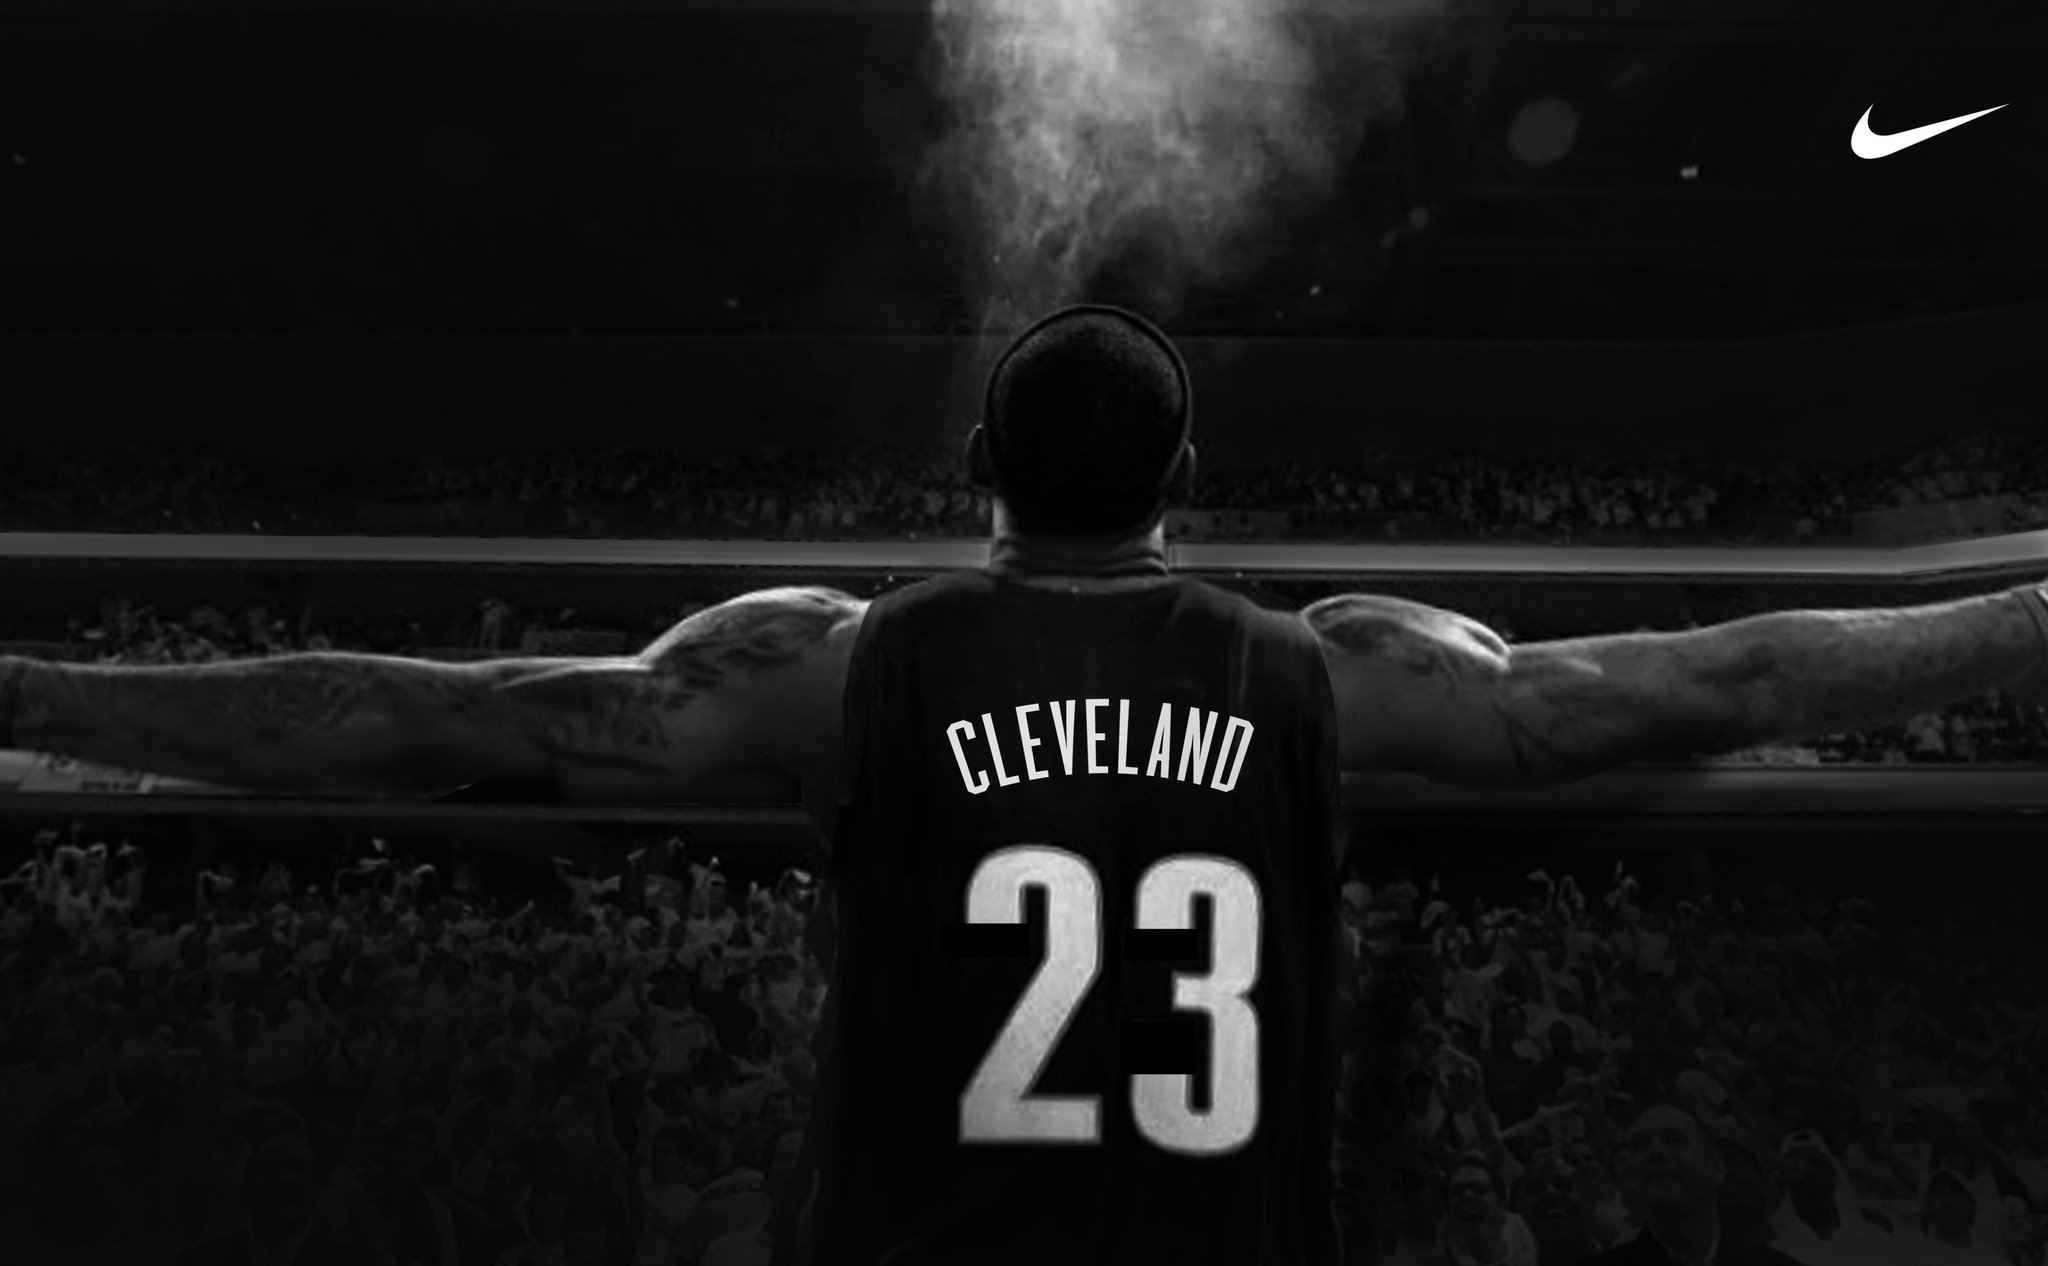 PHOTO: Check out Nike's new LeBron James banner in Cleveland